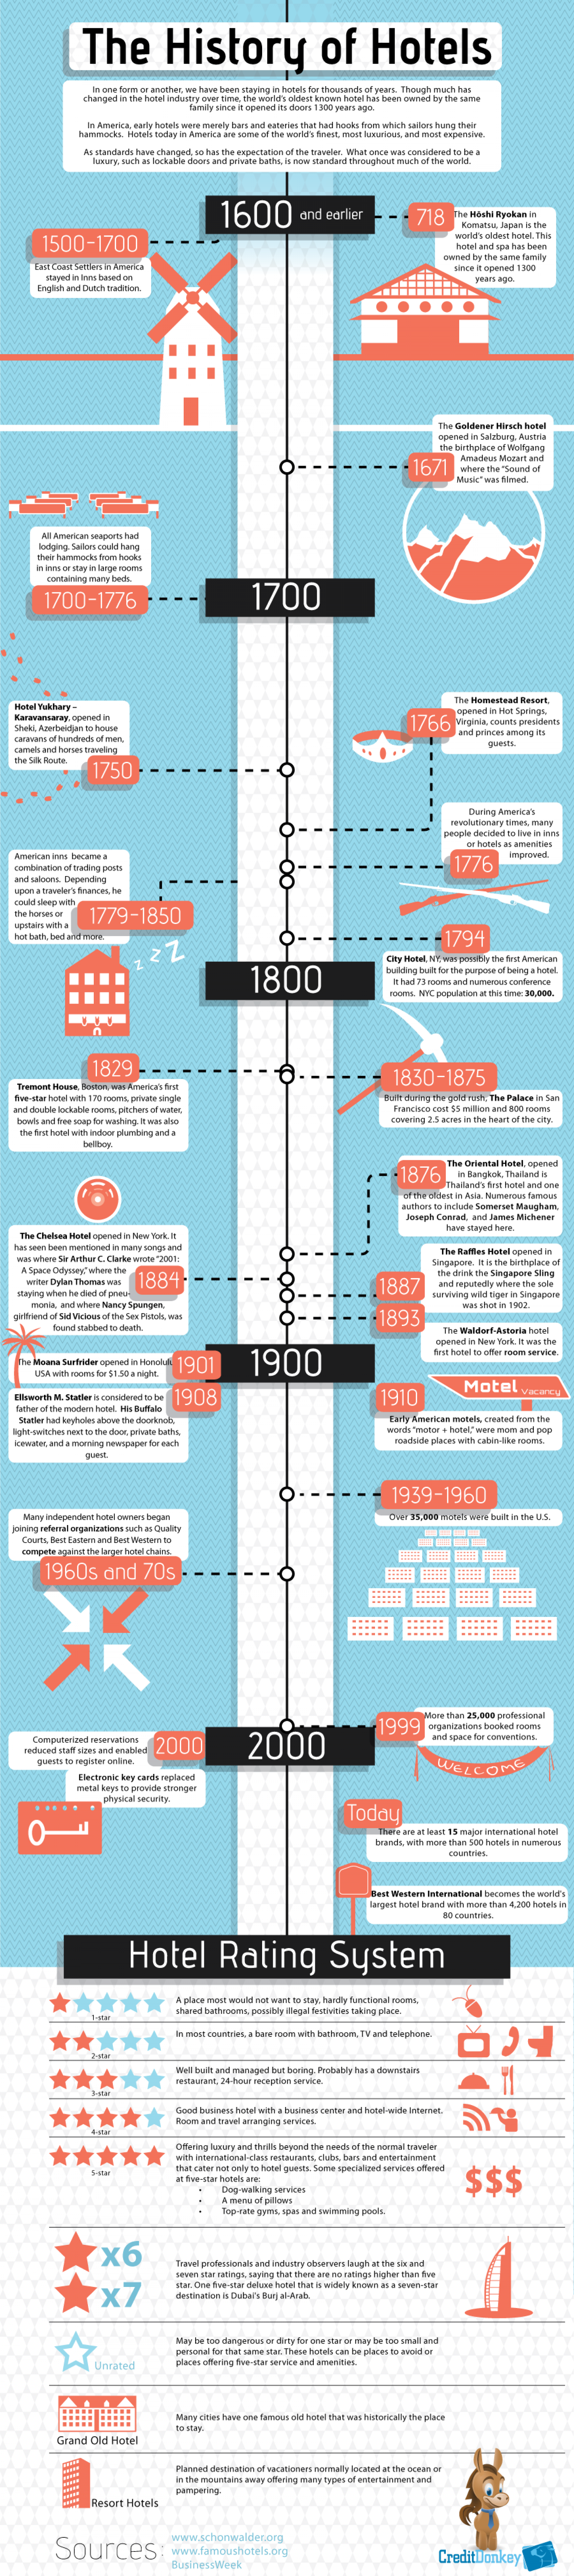 History of Hotels Infographic